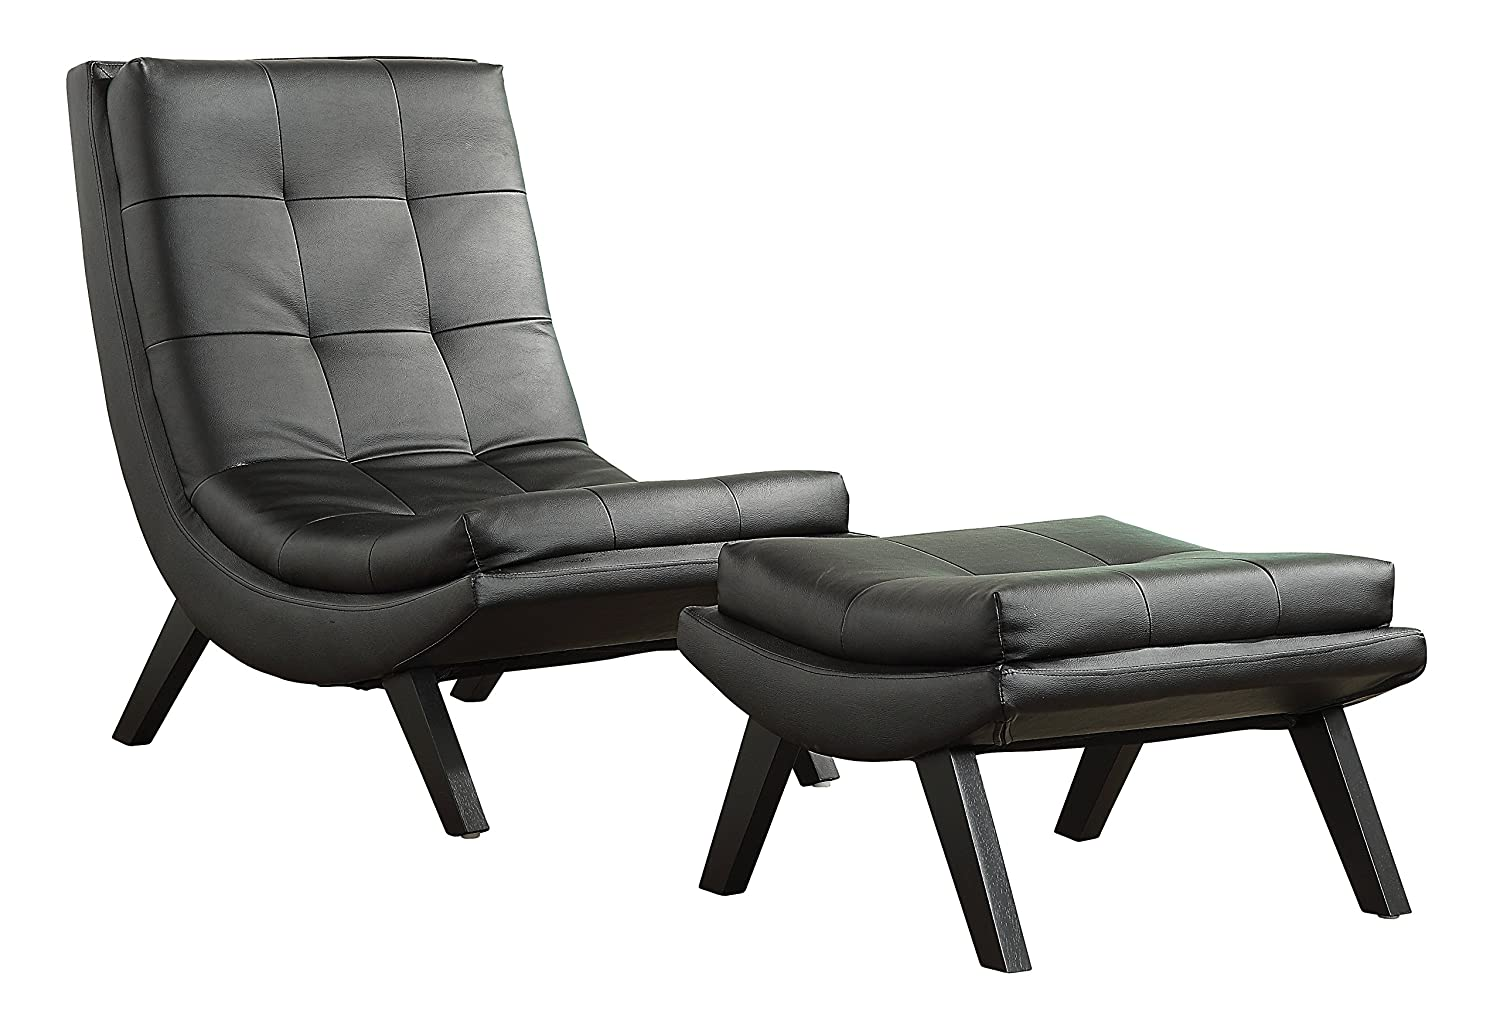 Lounge Chair amazon com ave six tustin faux leather lounge chair and ottoman set